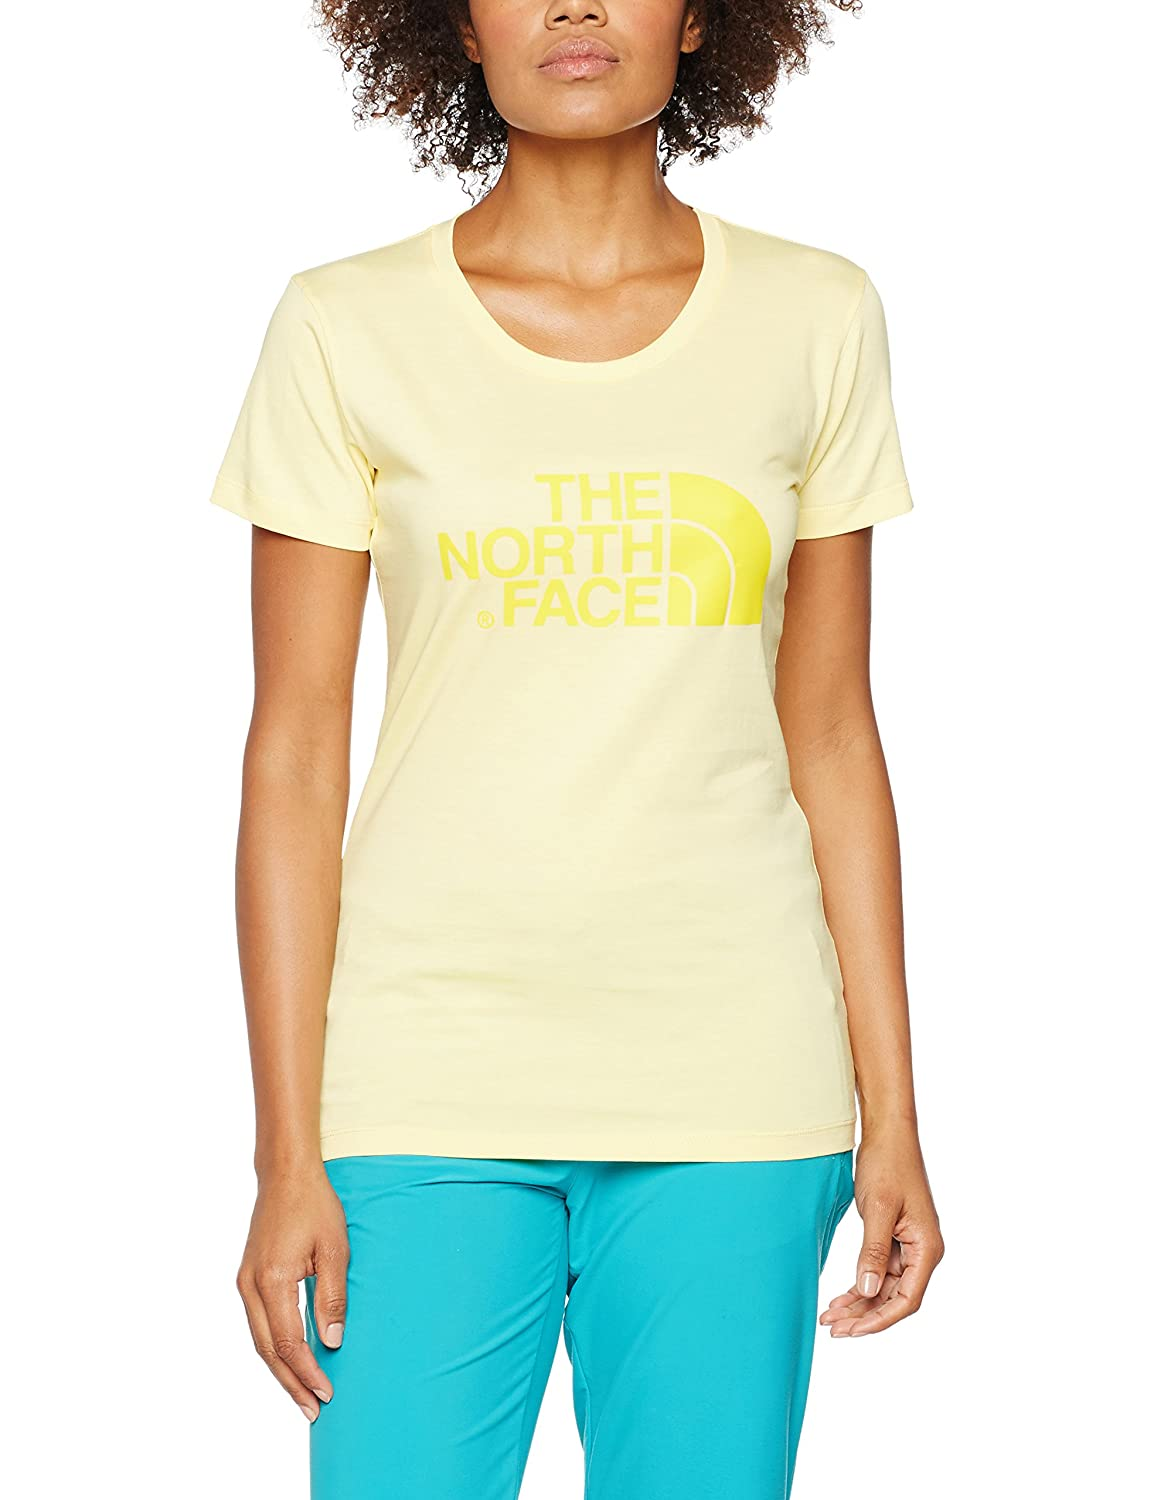 THE NORTH FACE Easy Camiseta, Mujer